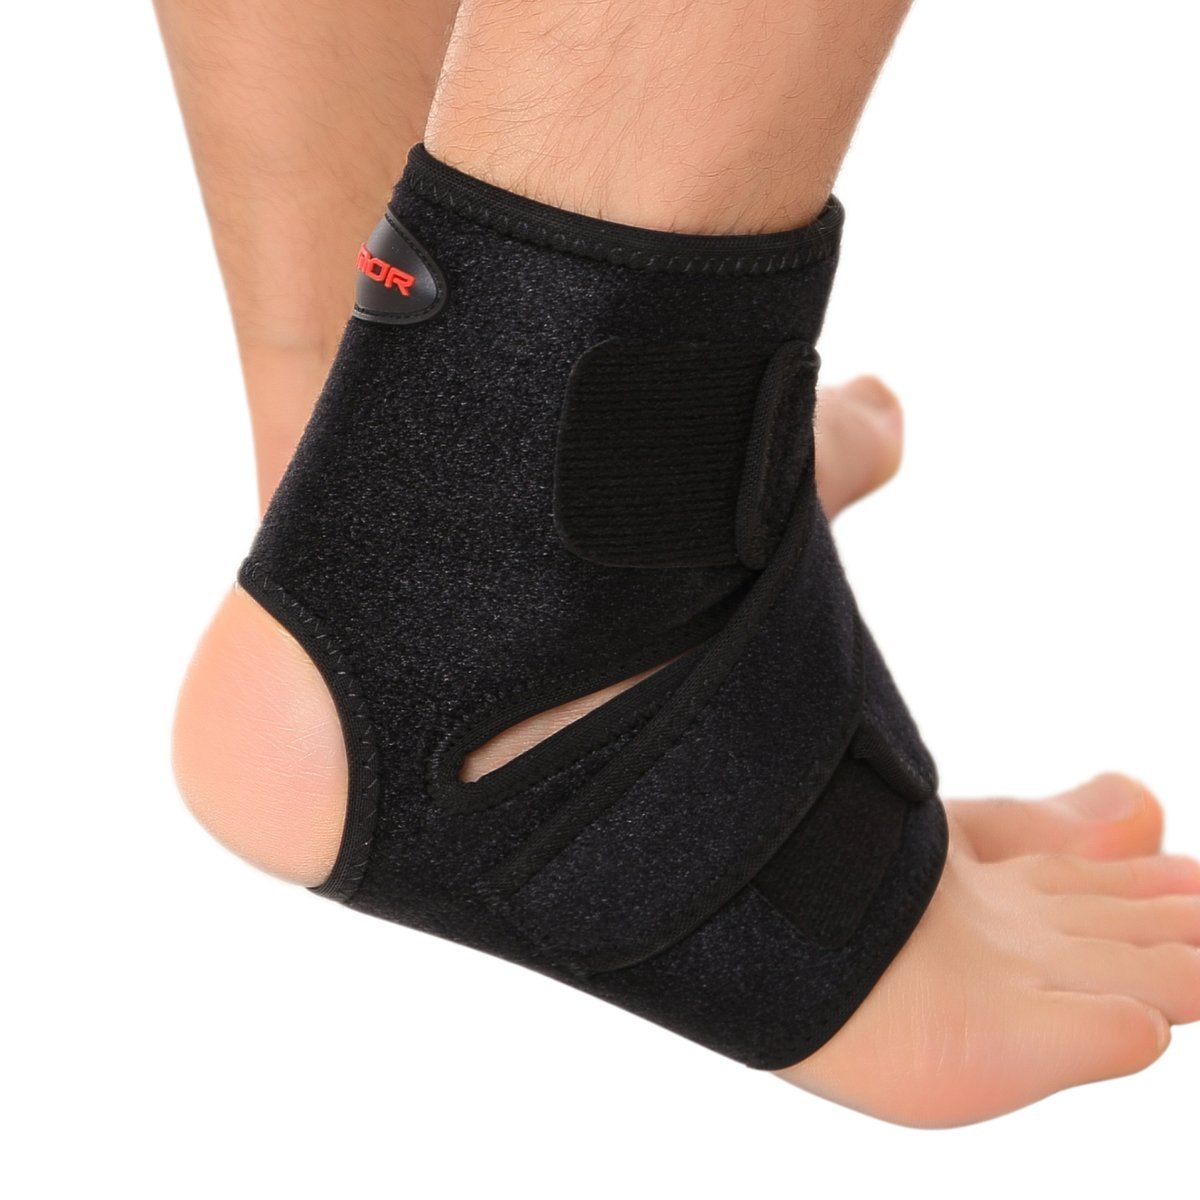 b14336c98e Amazon.com: Liomor Ankle Support Breathable Ankle Brace for Basketball  Running Ankle Sprain Men Women - XL, Black(Updated): Health & Personal Care